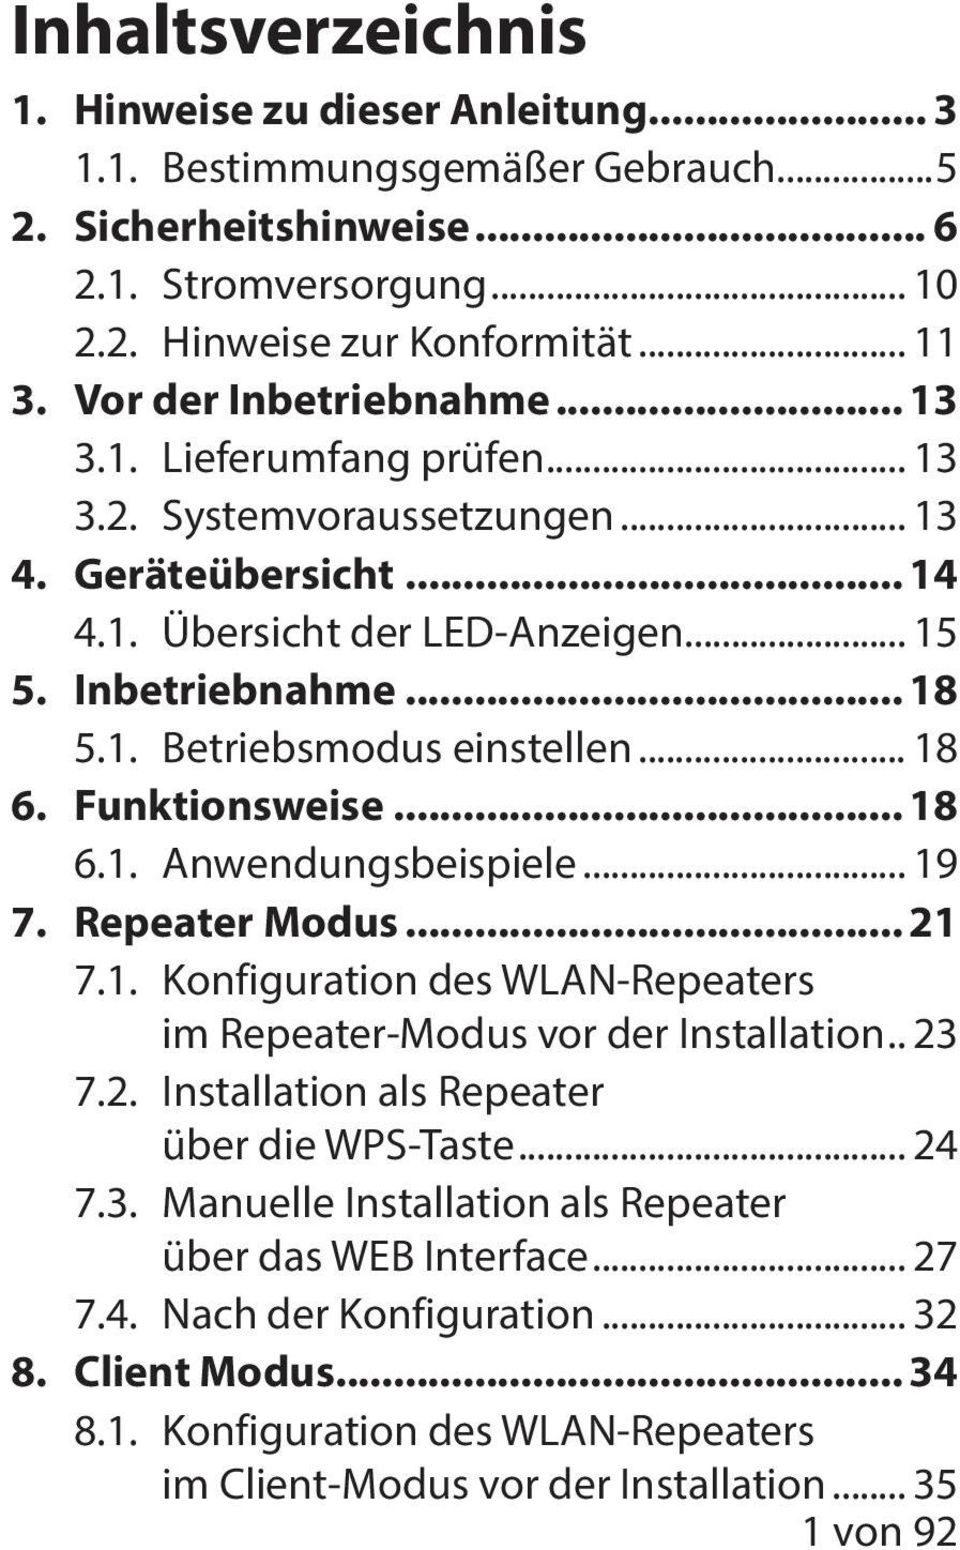 .. 18 6. Funktionsweise... 18 6.1. Anwendungsbeispiele... 19 7. Repeater Modus... 21 7.1. Konfiguration des WLAN-Repeaters im Repeater-Modus vor der Installation.. 23 7.2. Installation als Repeater über die WPS-Taste.